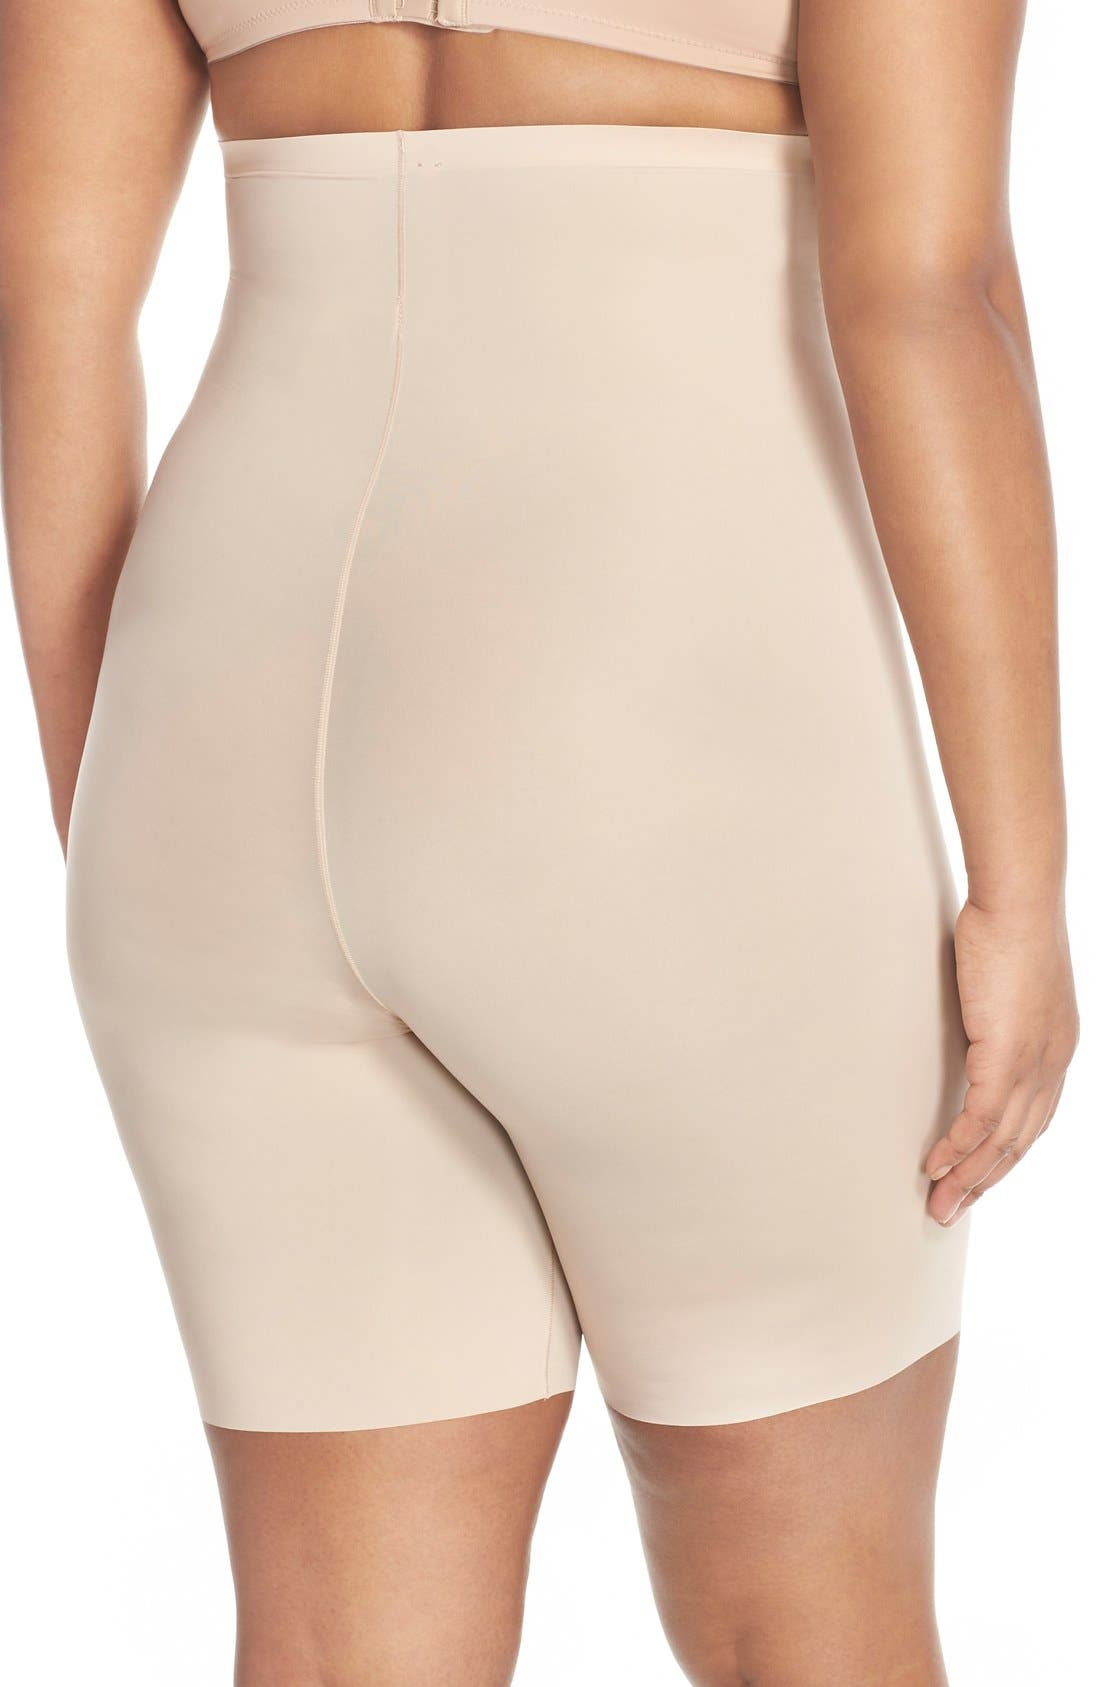 Alternate Image 2  - SPANX® Thinstincts™ High Waist Mid-Thigh Shorts (Plus Size)